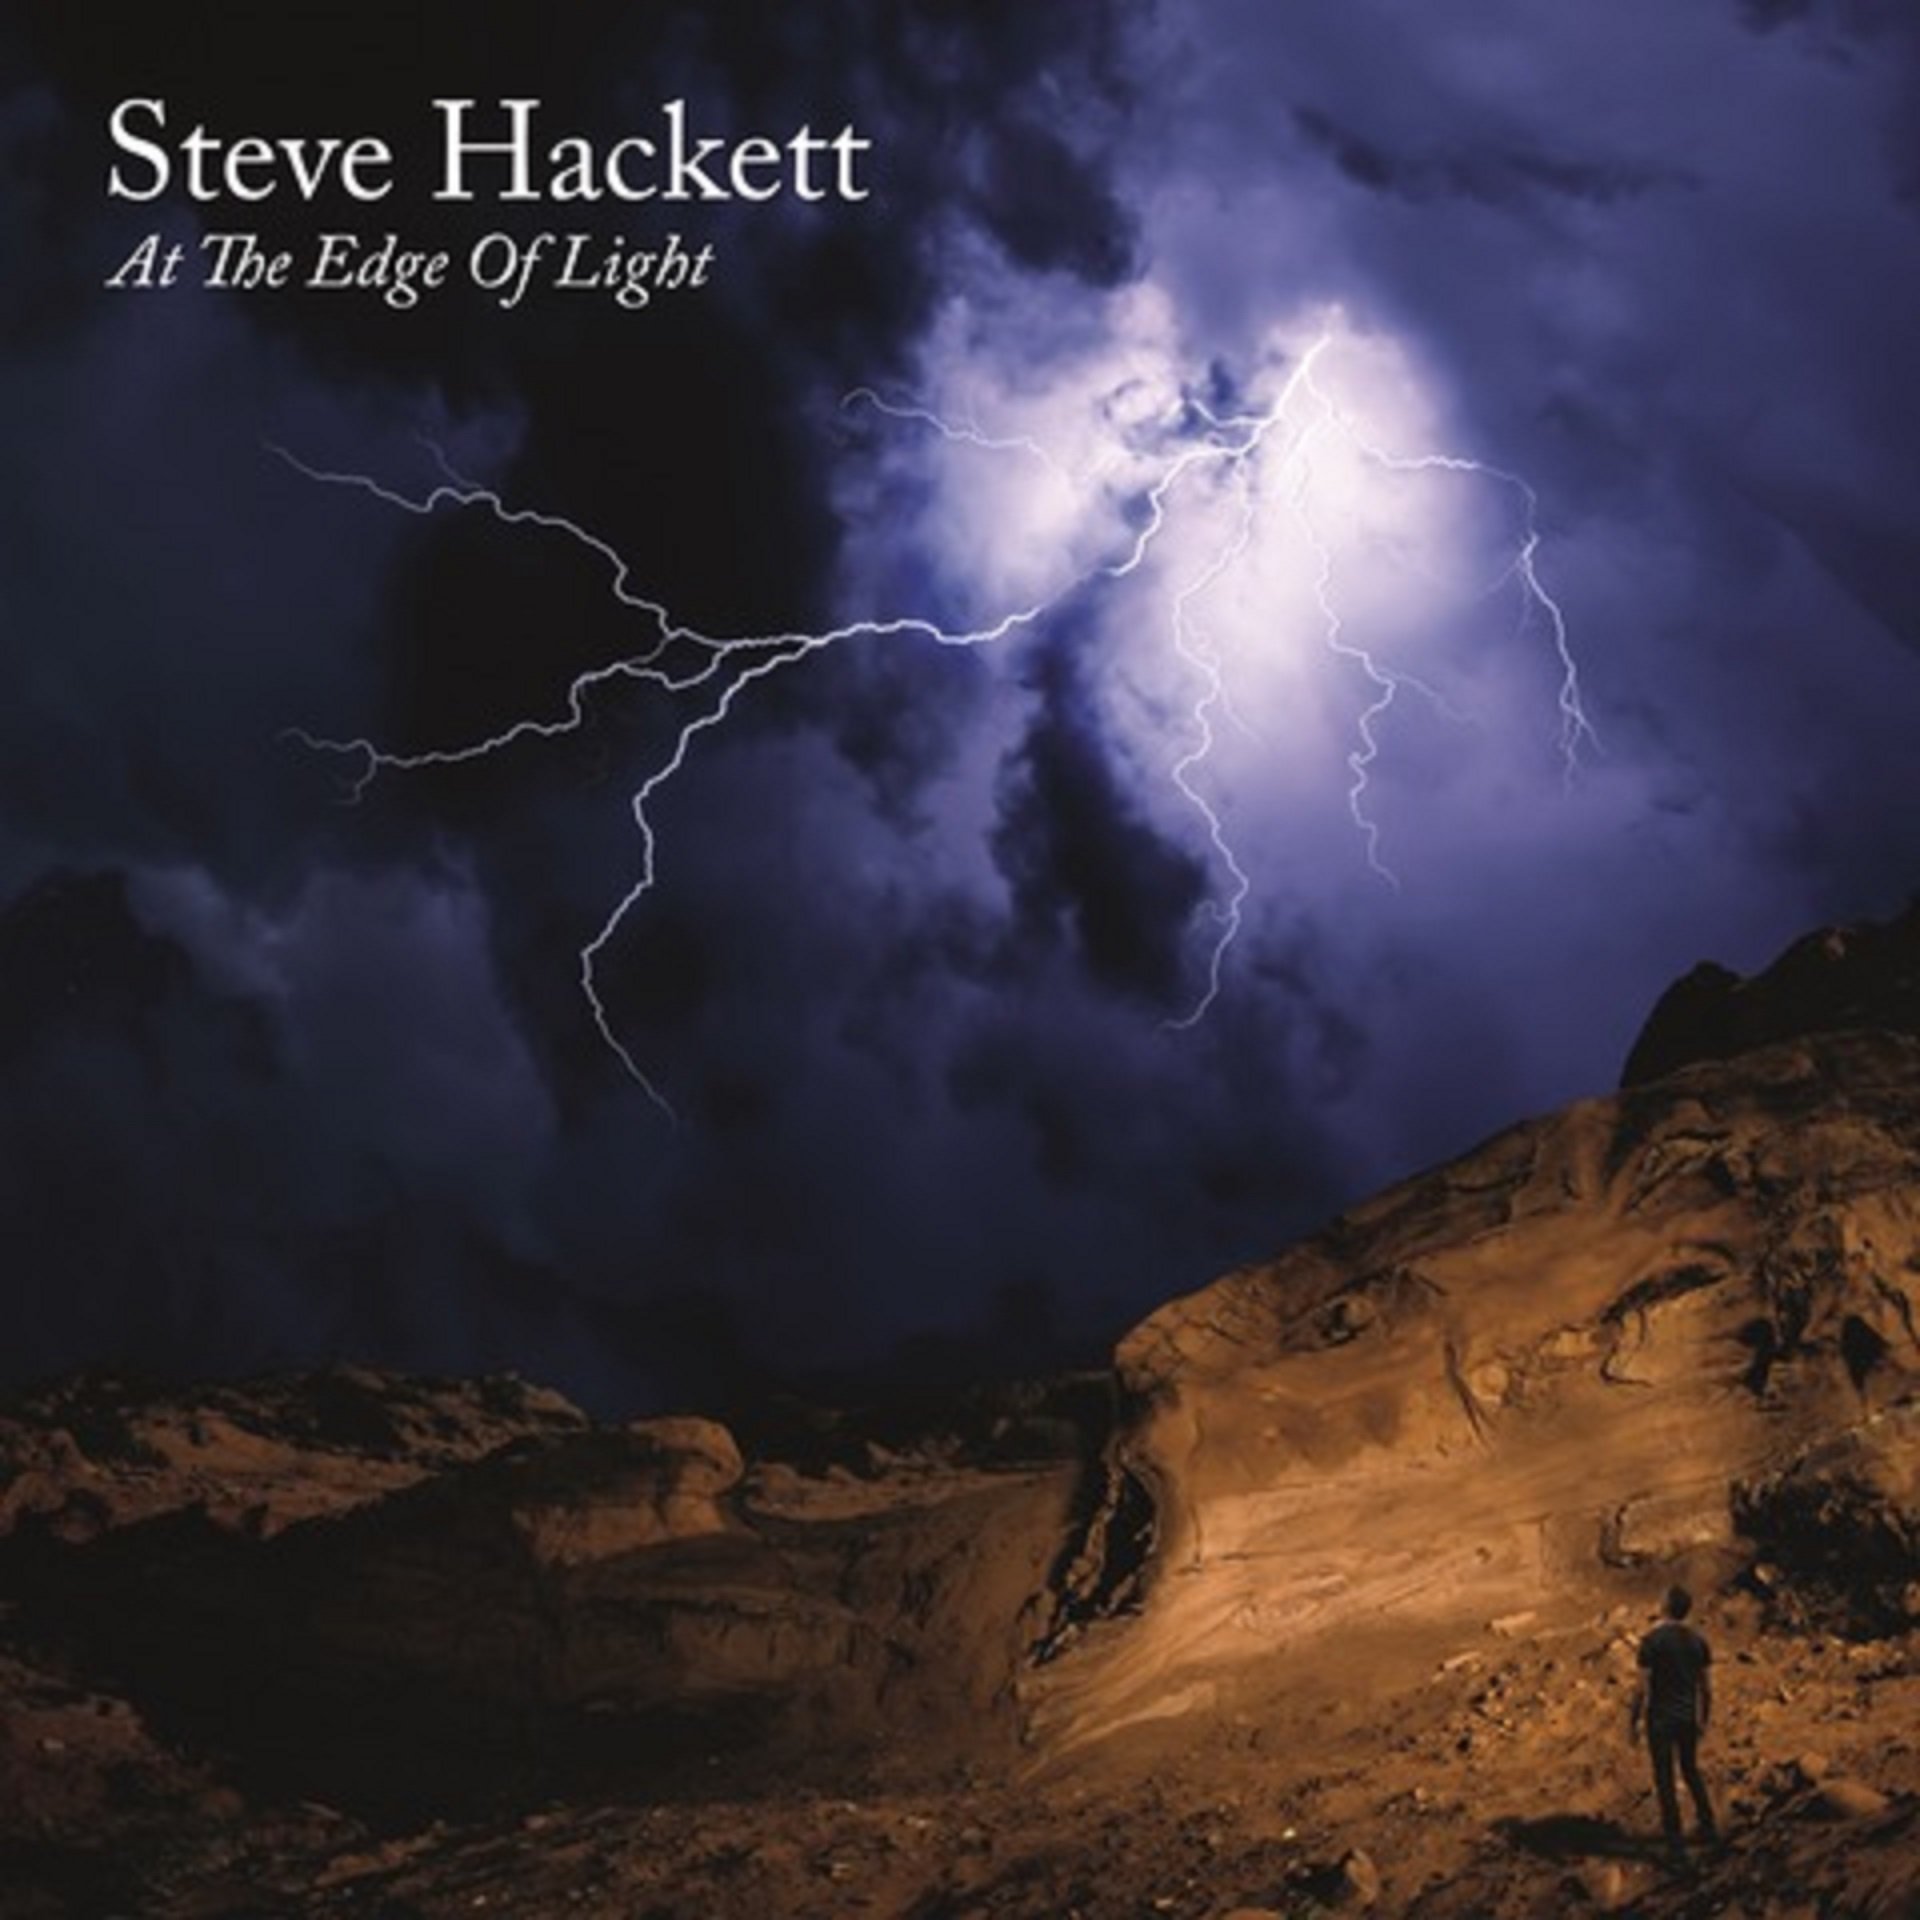 Steve Hackett announces release of new studio album 'At The Edge Of Light'